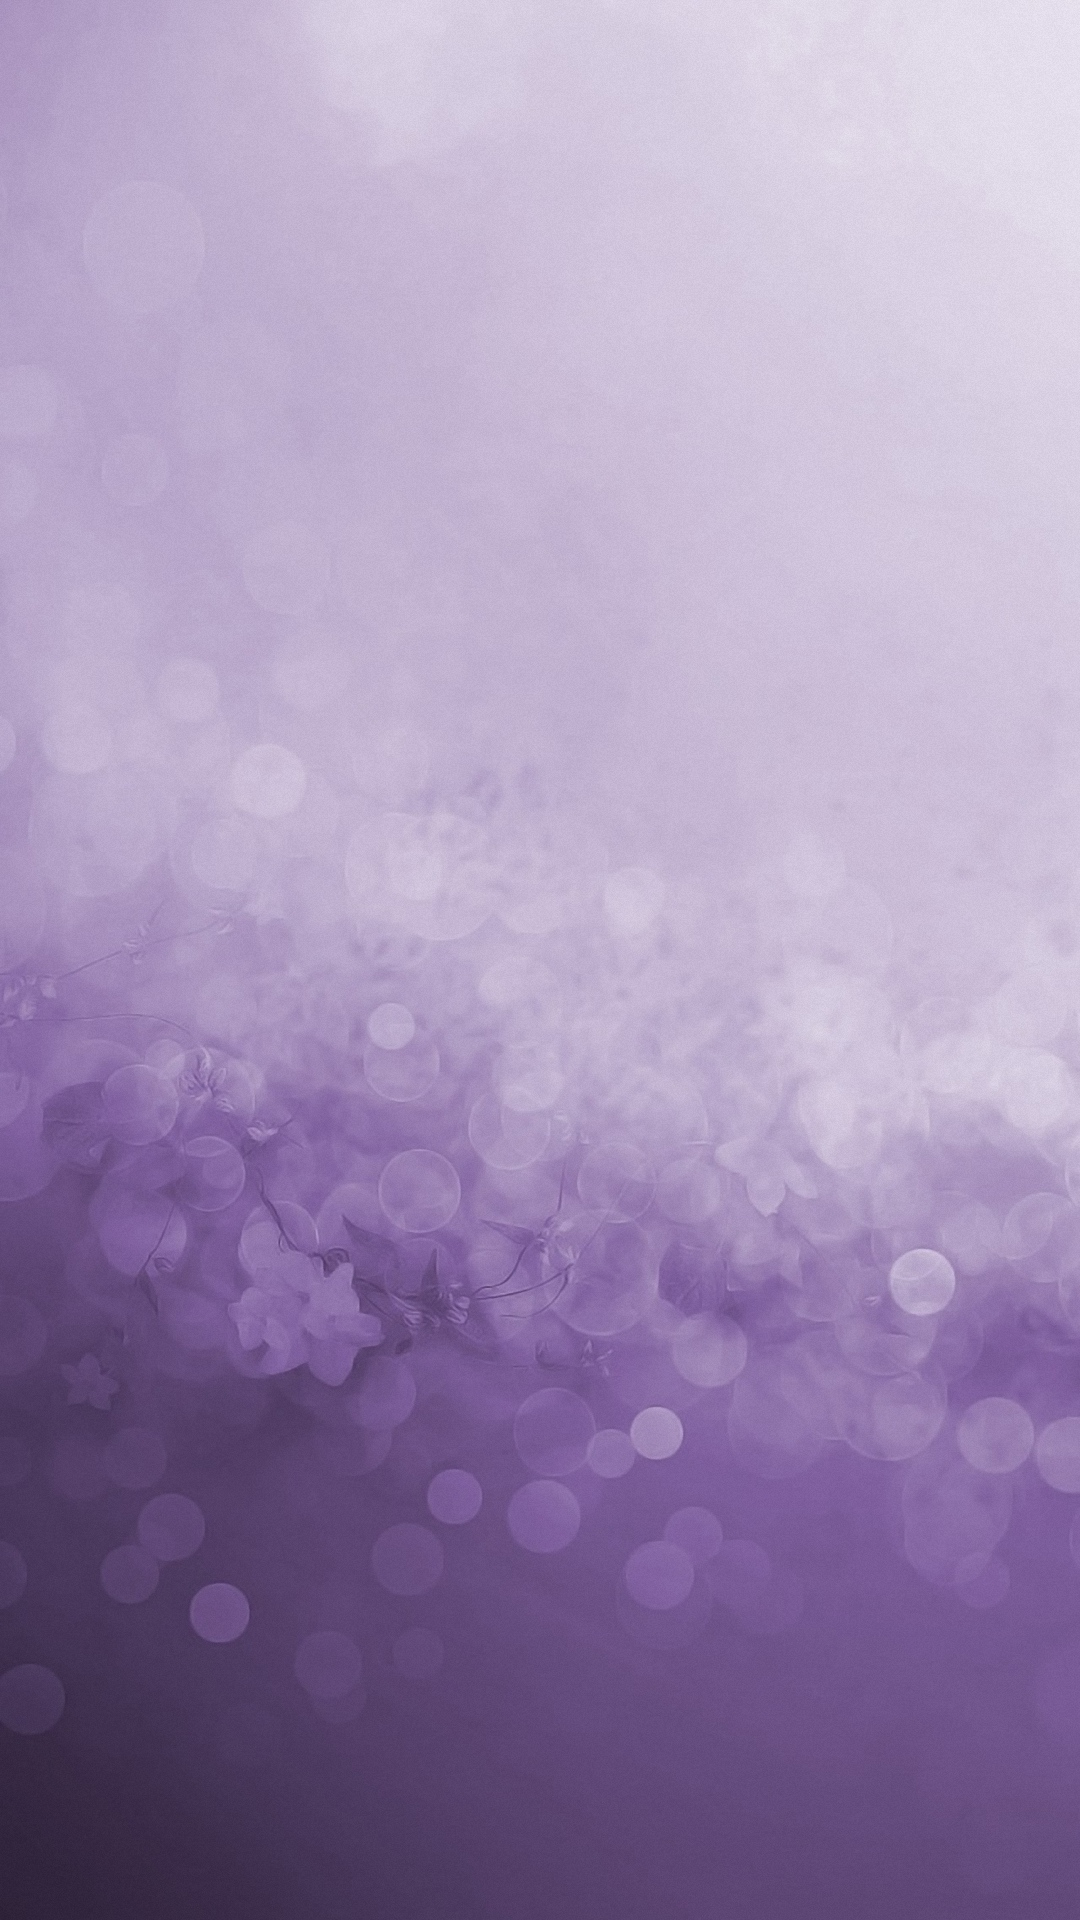 Purple Wallpaper For Phone - WallpaperSafari